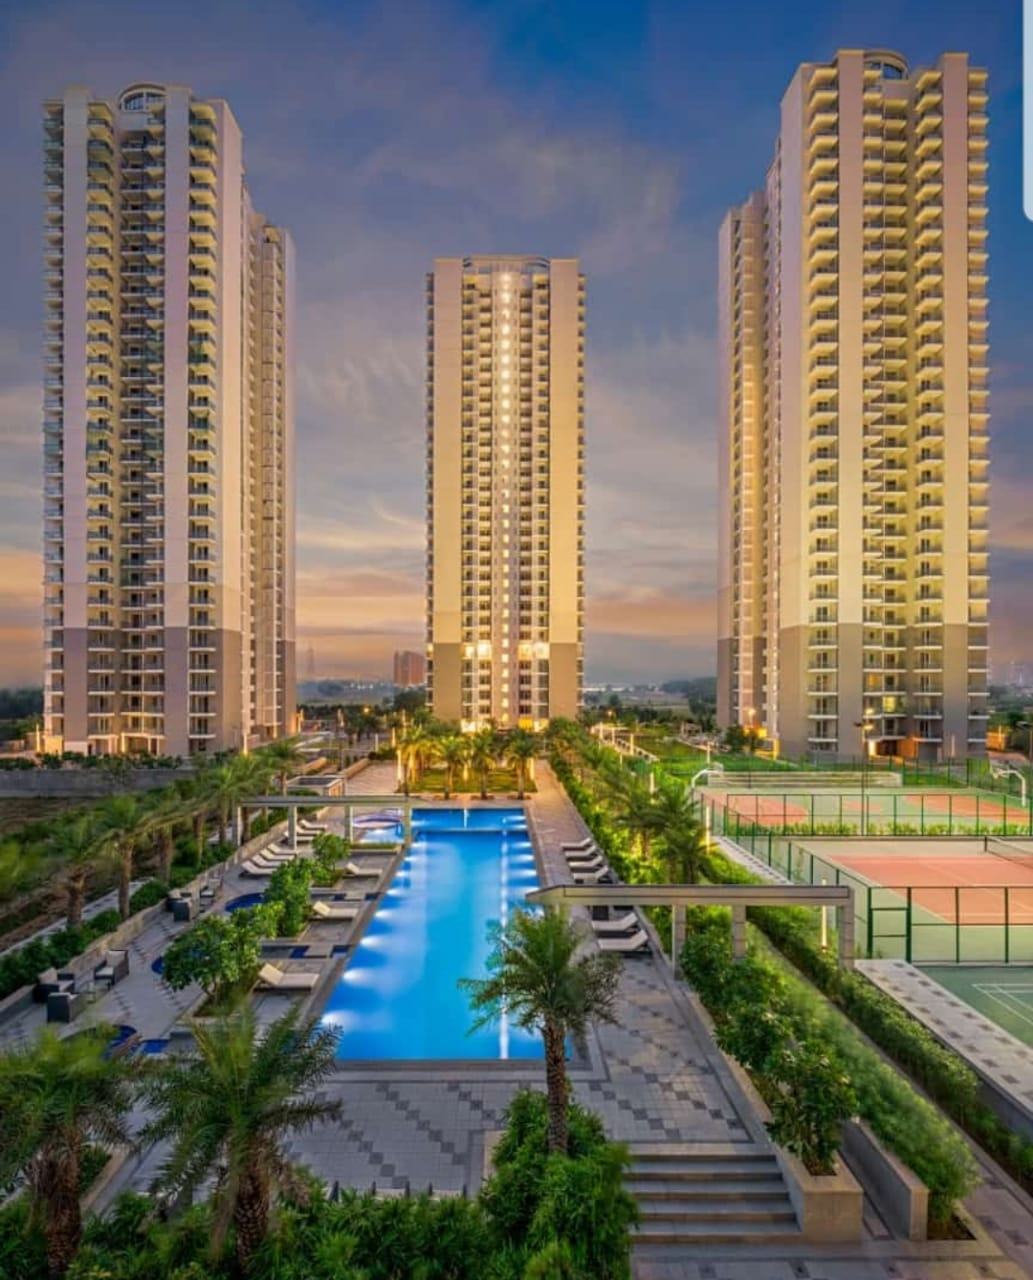 Dlf The Ultima - Offers 4 BHK Apartments Gurgaon